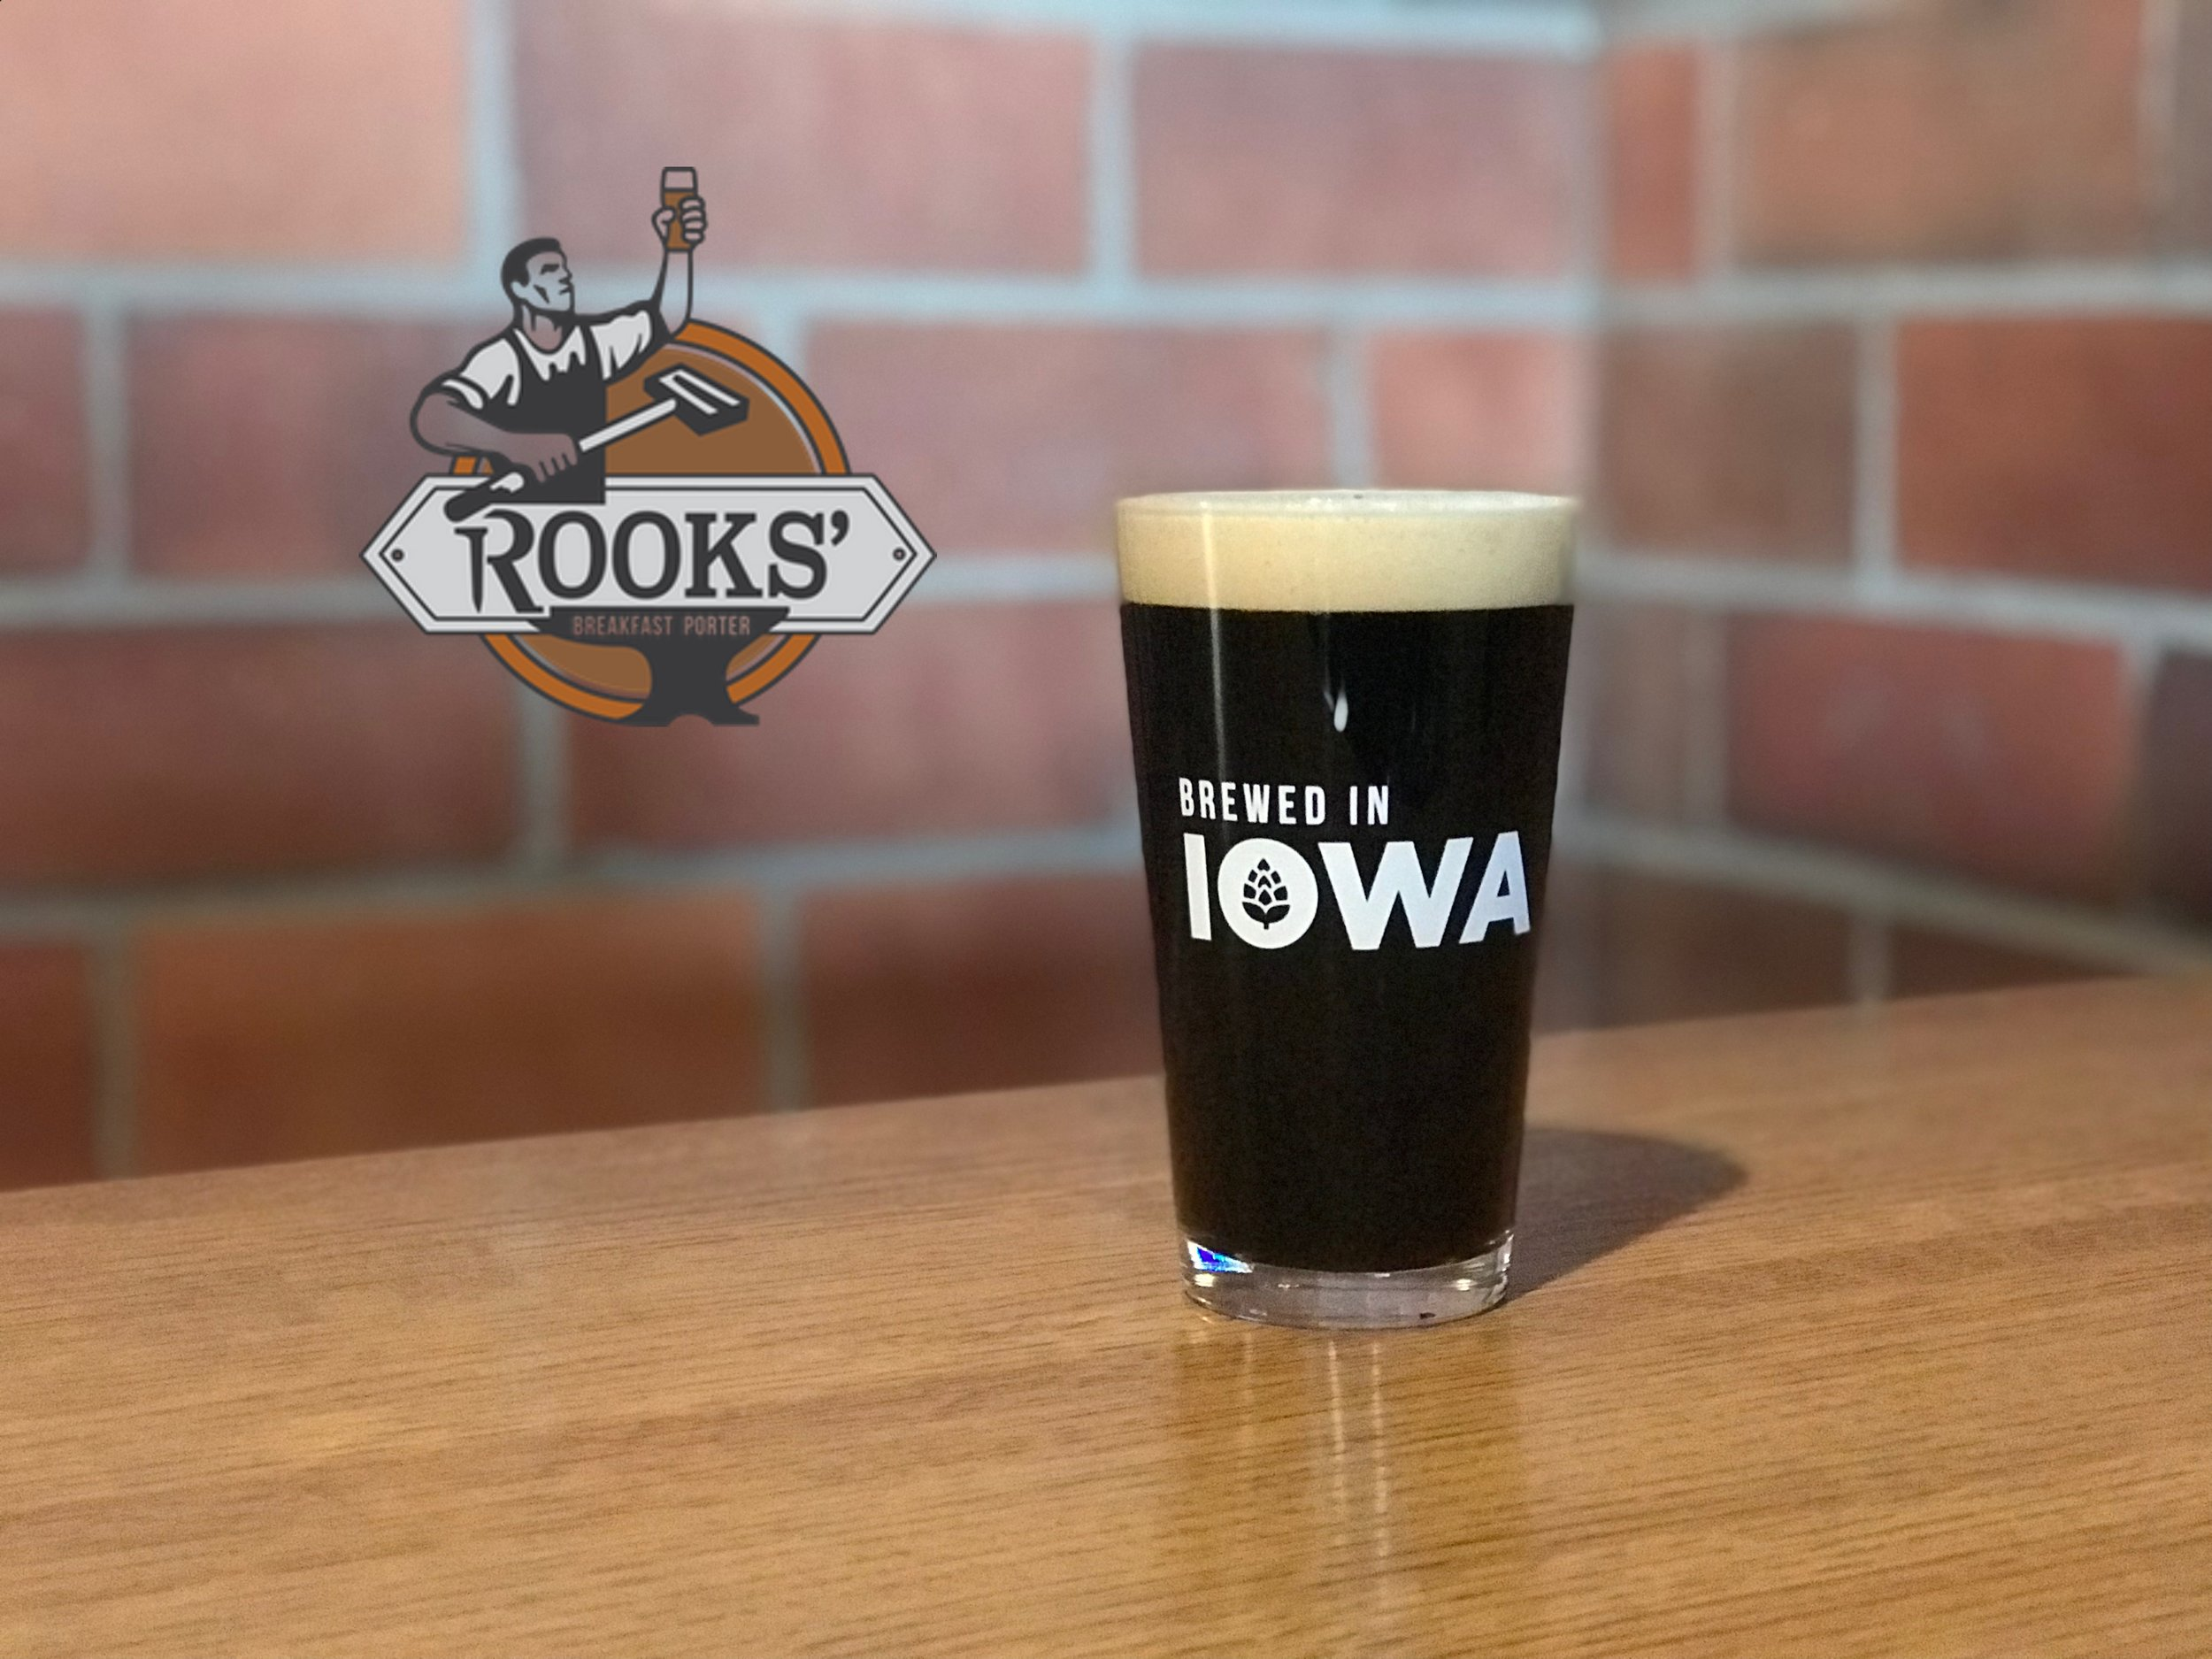 Rooks' Breakfast Porter -  Our vanilla coffee porter is a malty, dark beer that pours silky black. With an enticing aroma of sweet vanilla and coffee, this porter finishes much ligther than it looks. Blended with two different types of cold brewed coffee, this delicious beer is perfect for any time of day!  5.1% ABV - 18 IBUs